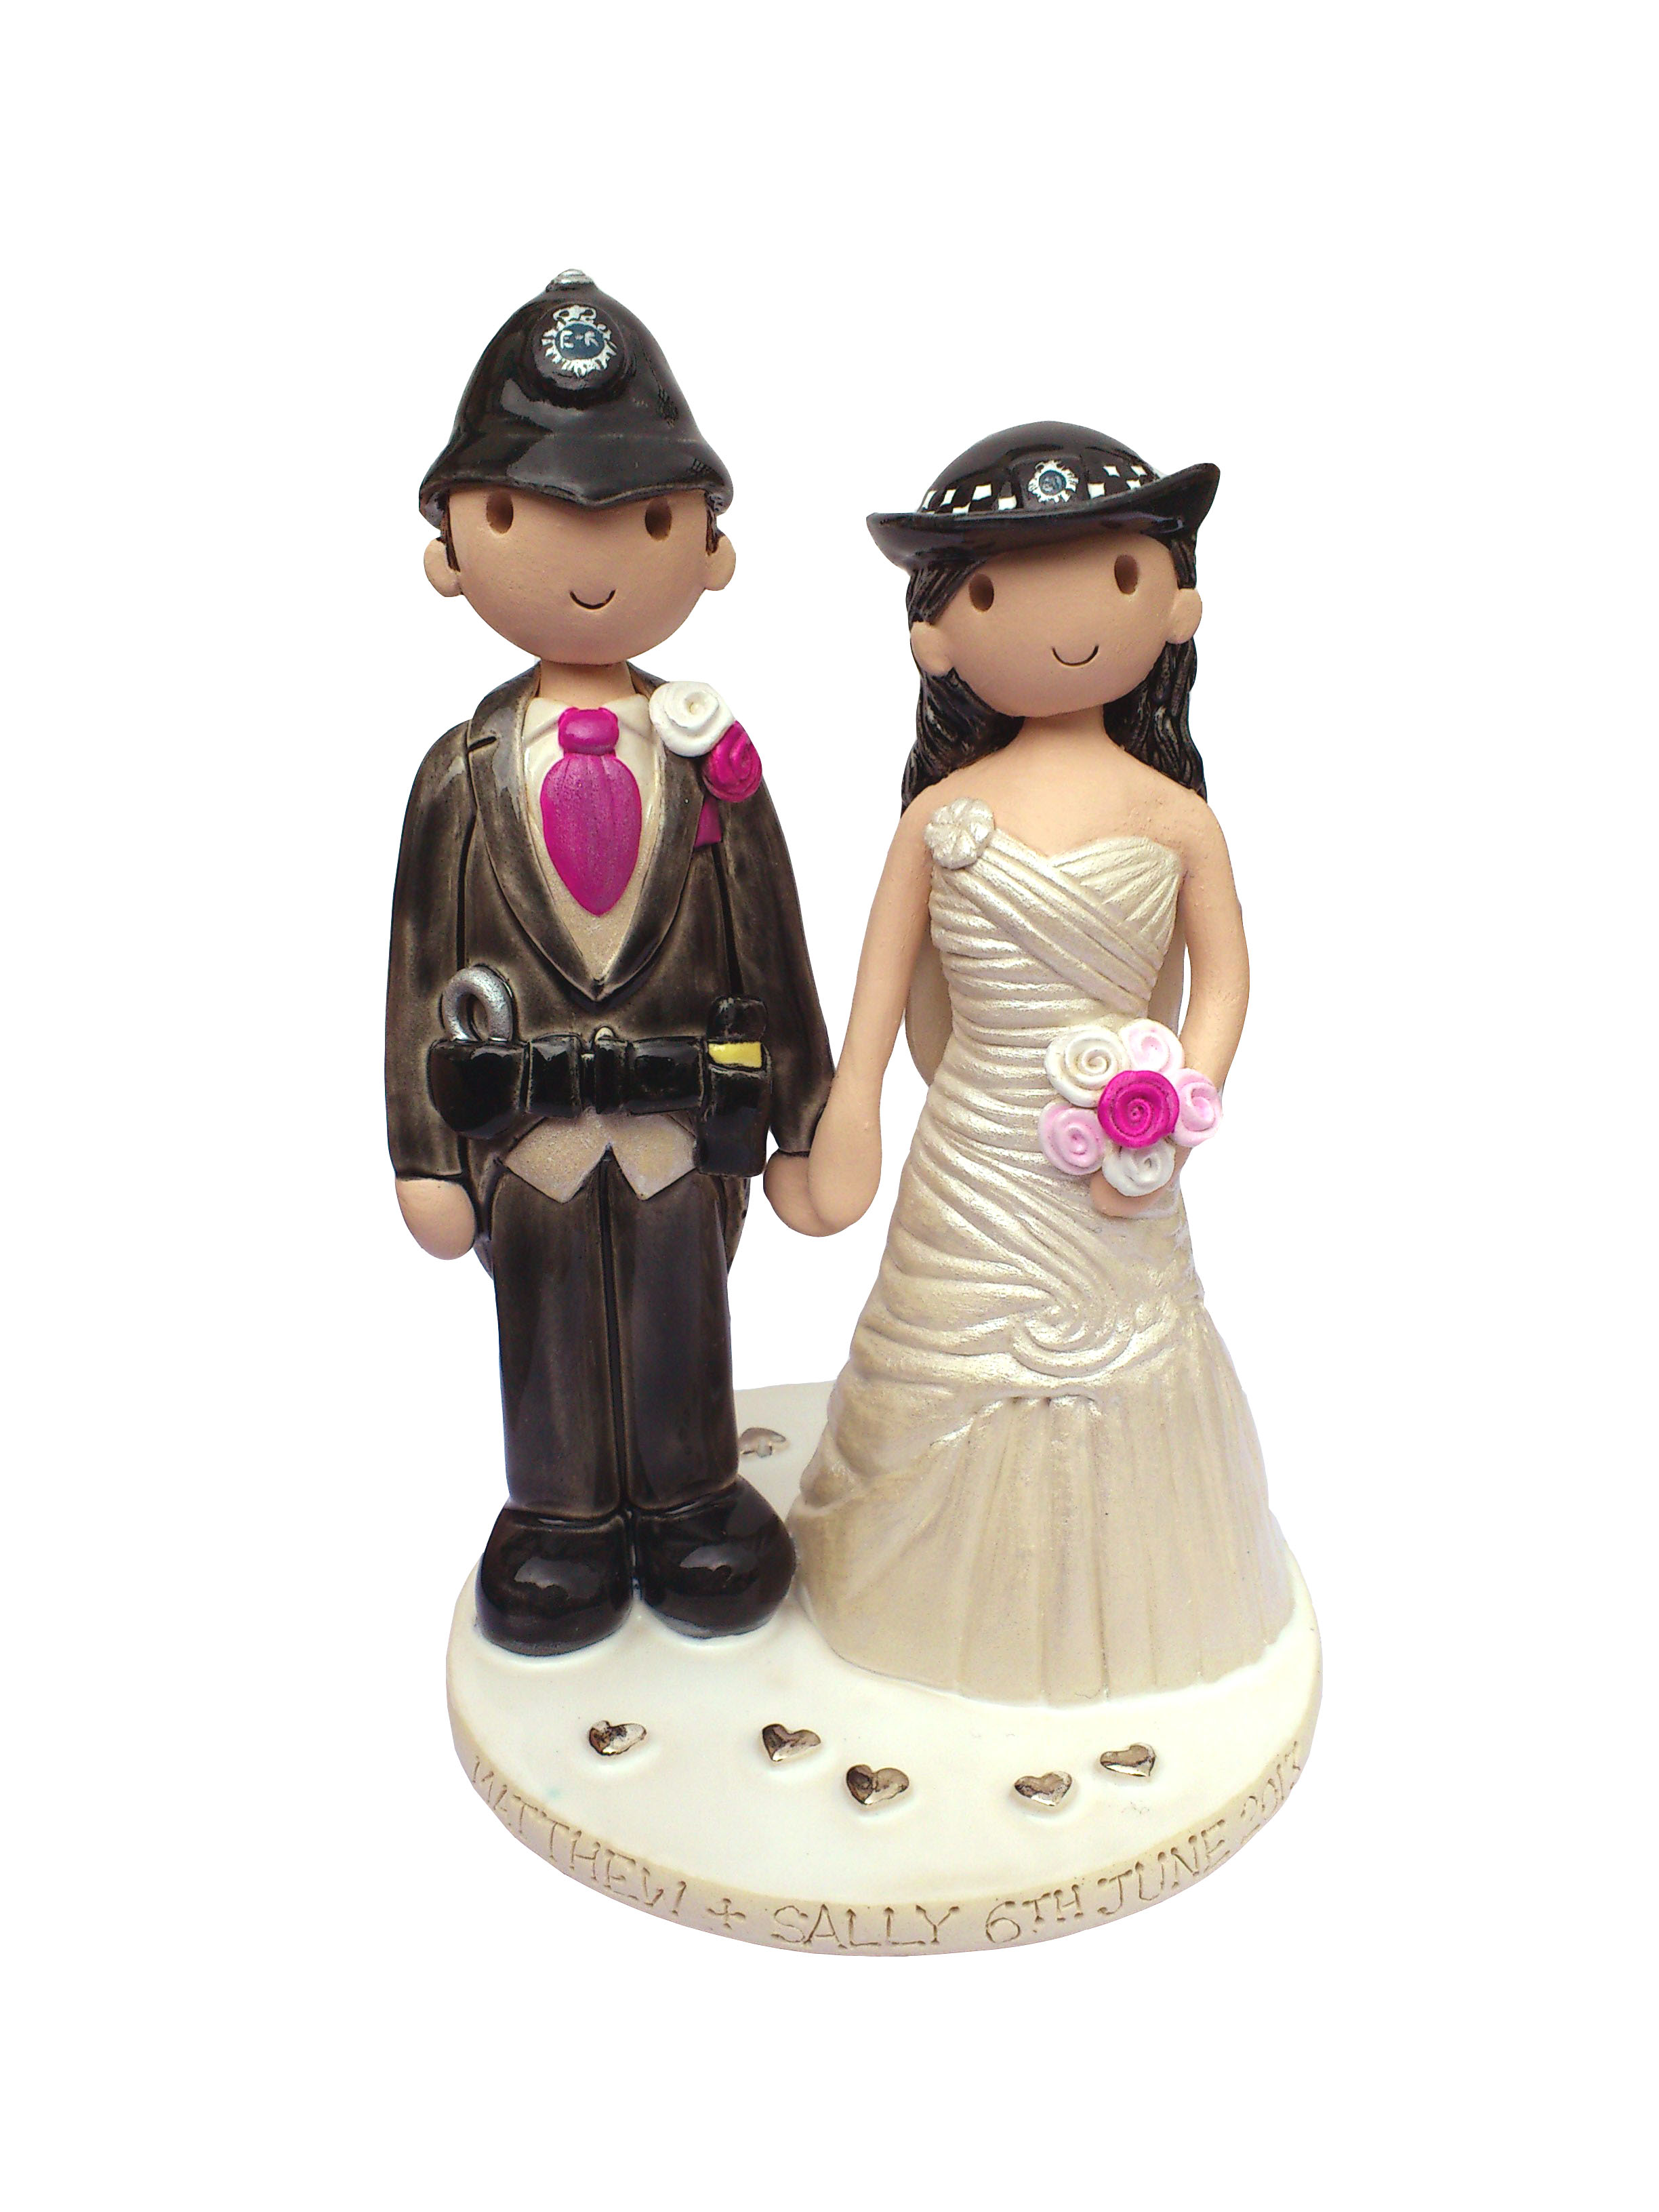 Police Cake Toppers For Wedding Cakes